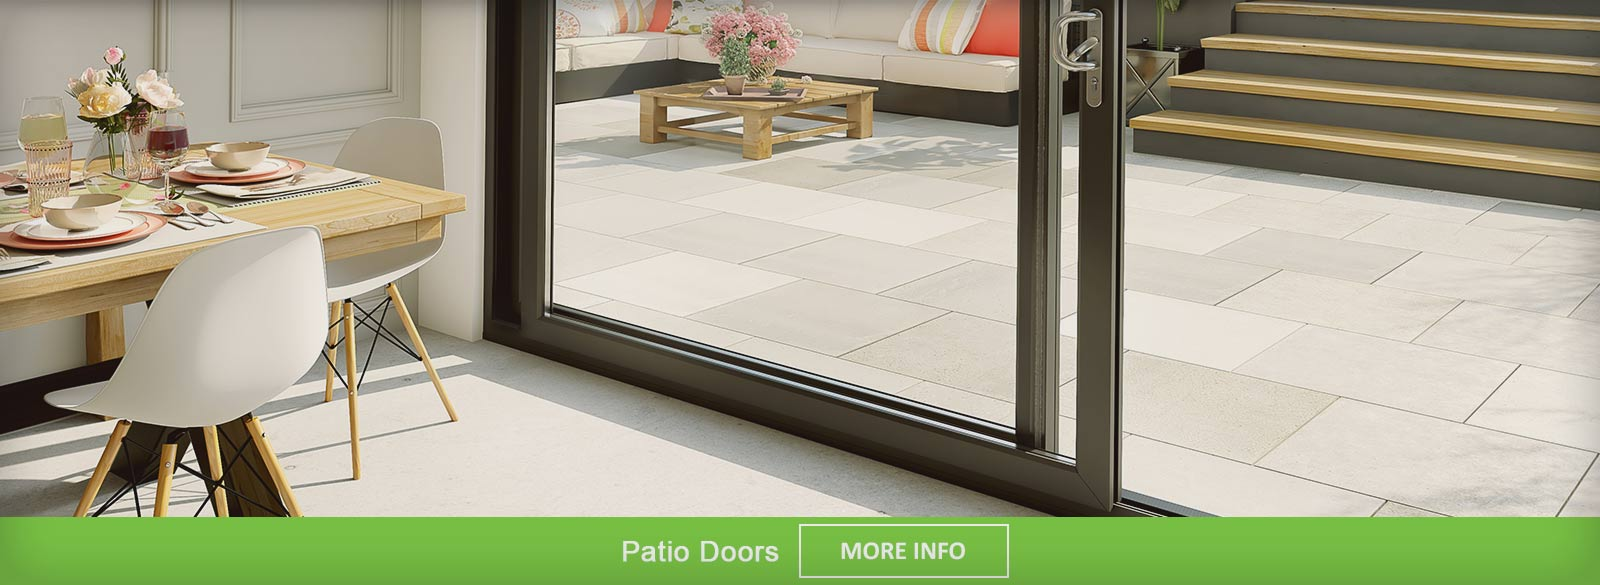 White PVC-u Sliding Patio doors for internal room